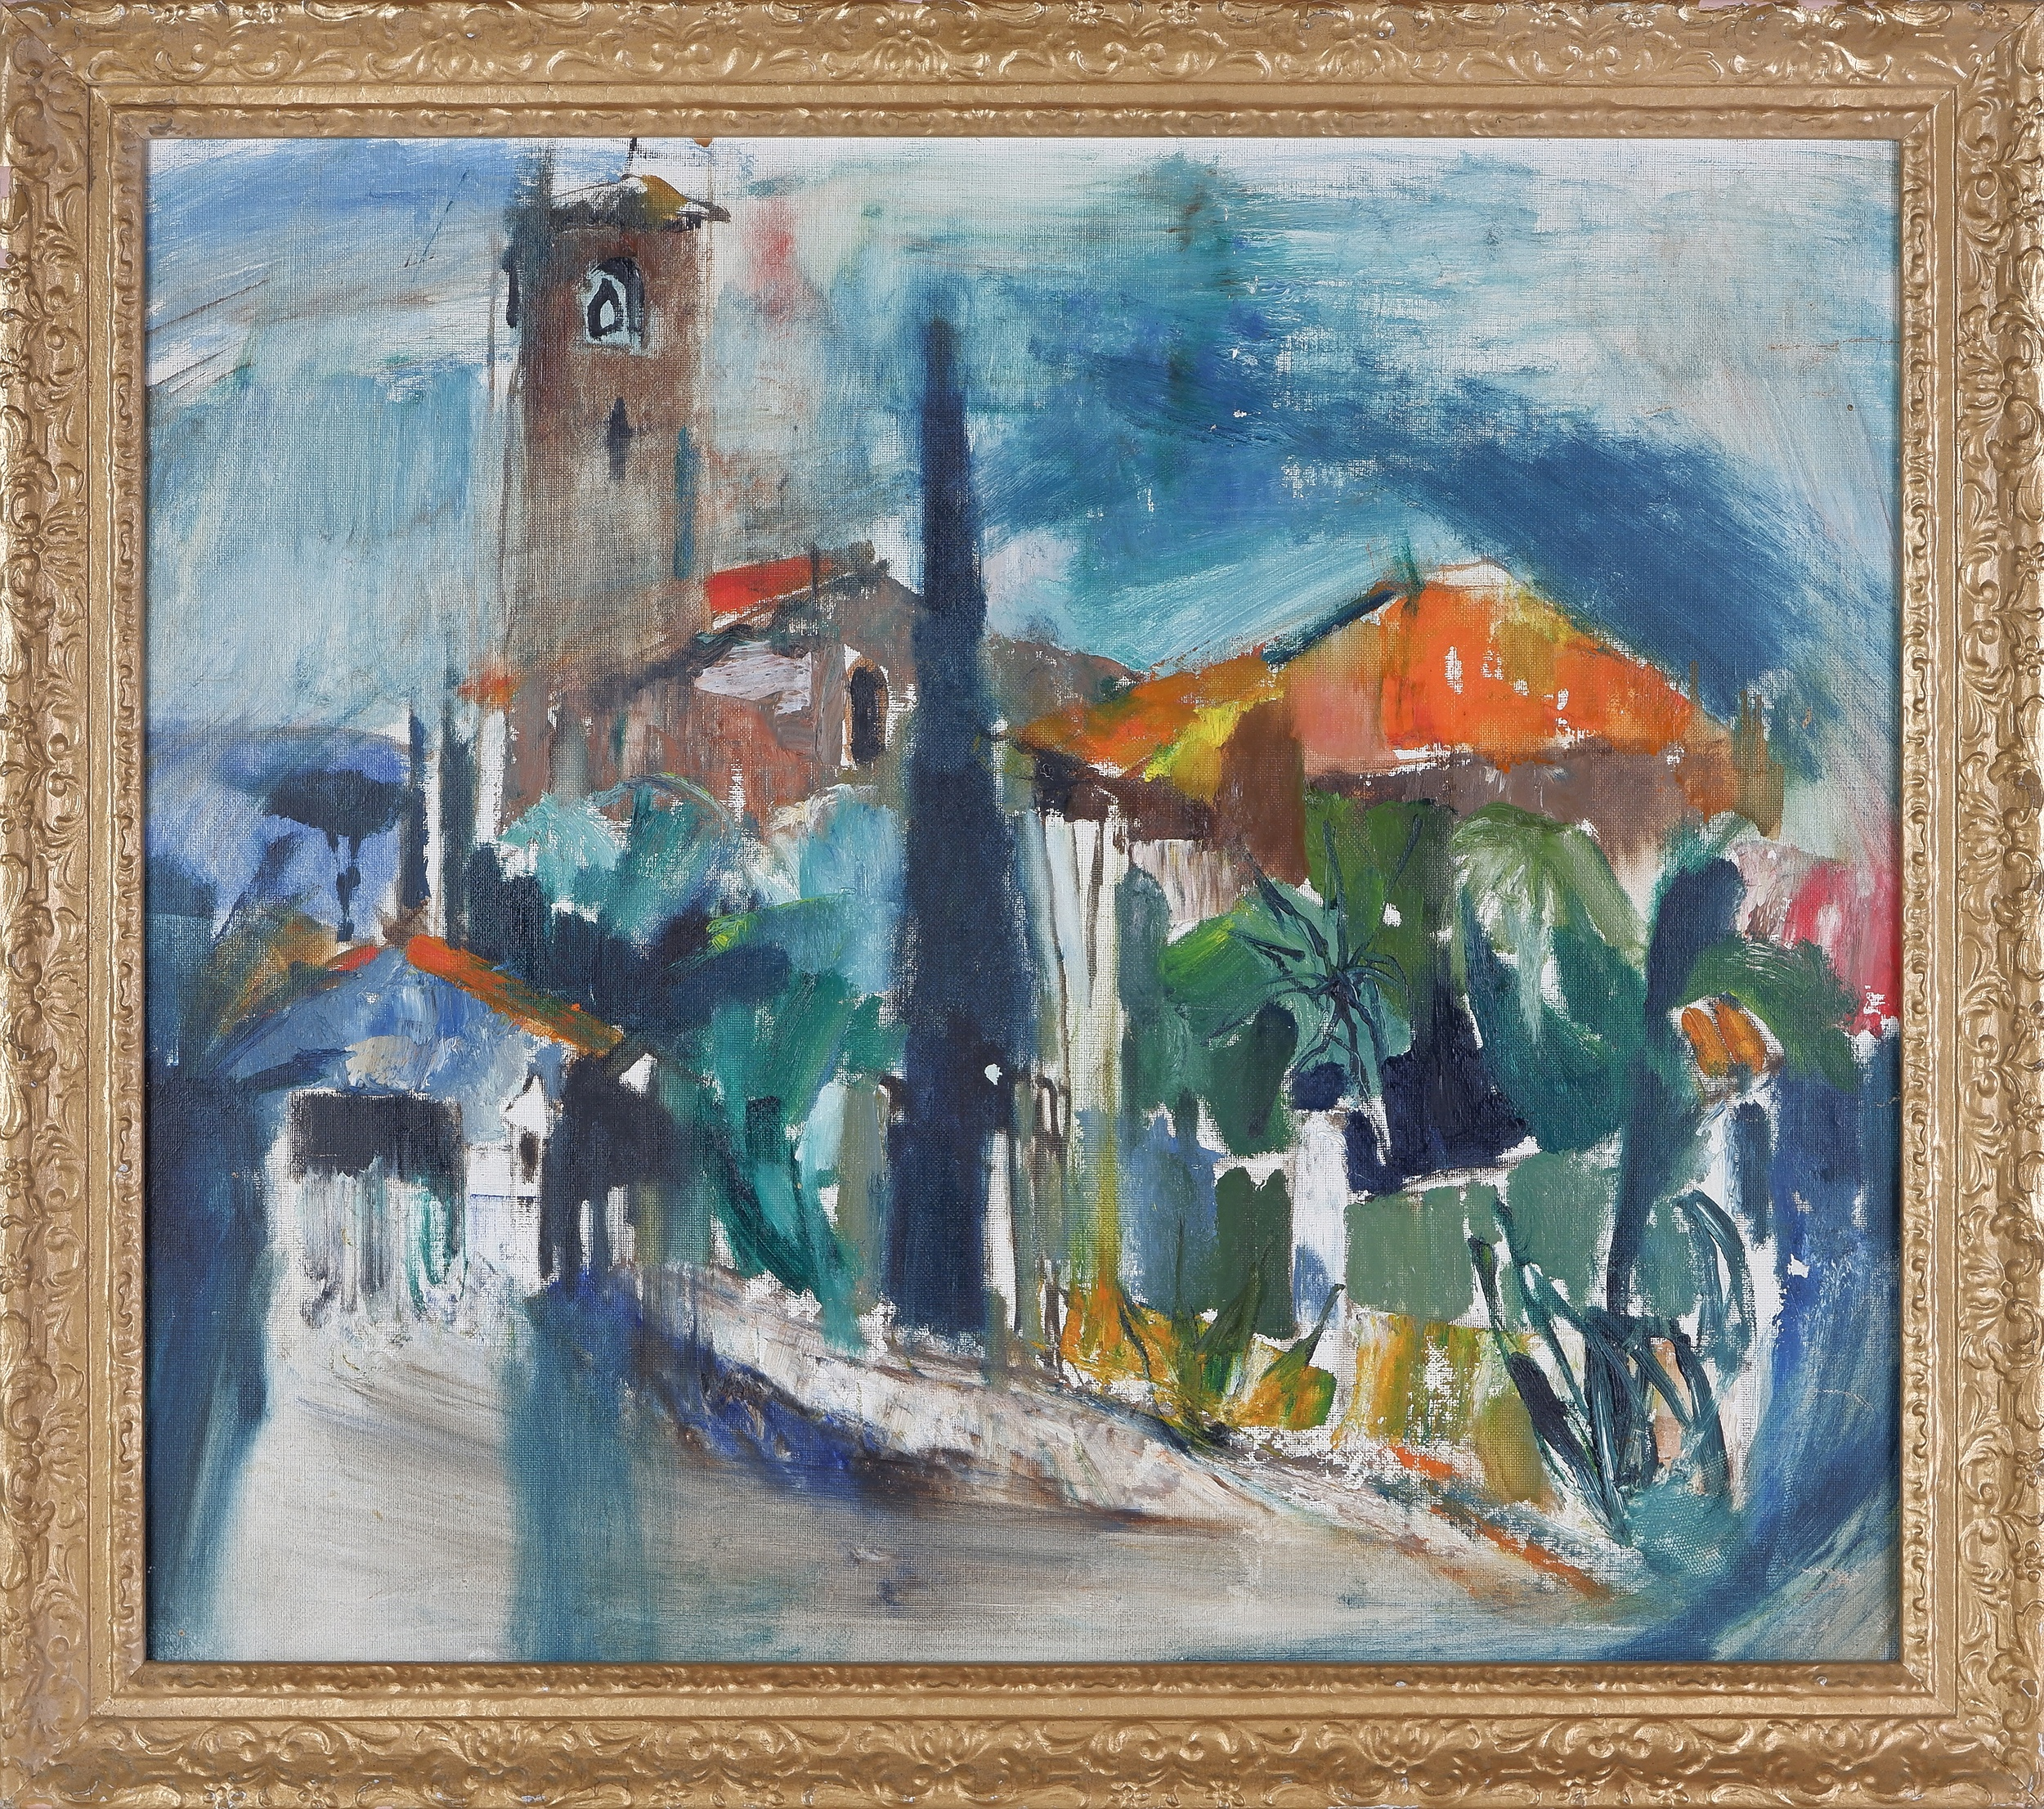 'Attributed to Judy Cassab (1920-2015), Untitled (Street Scene with Bell Tower), Oil on Canvas on Board'